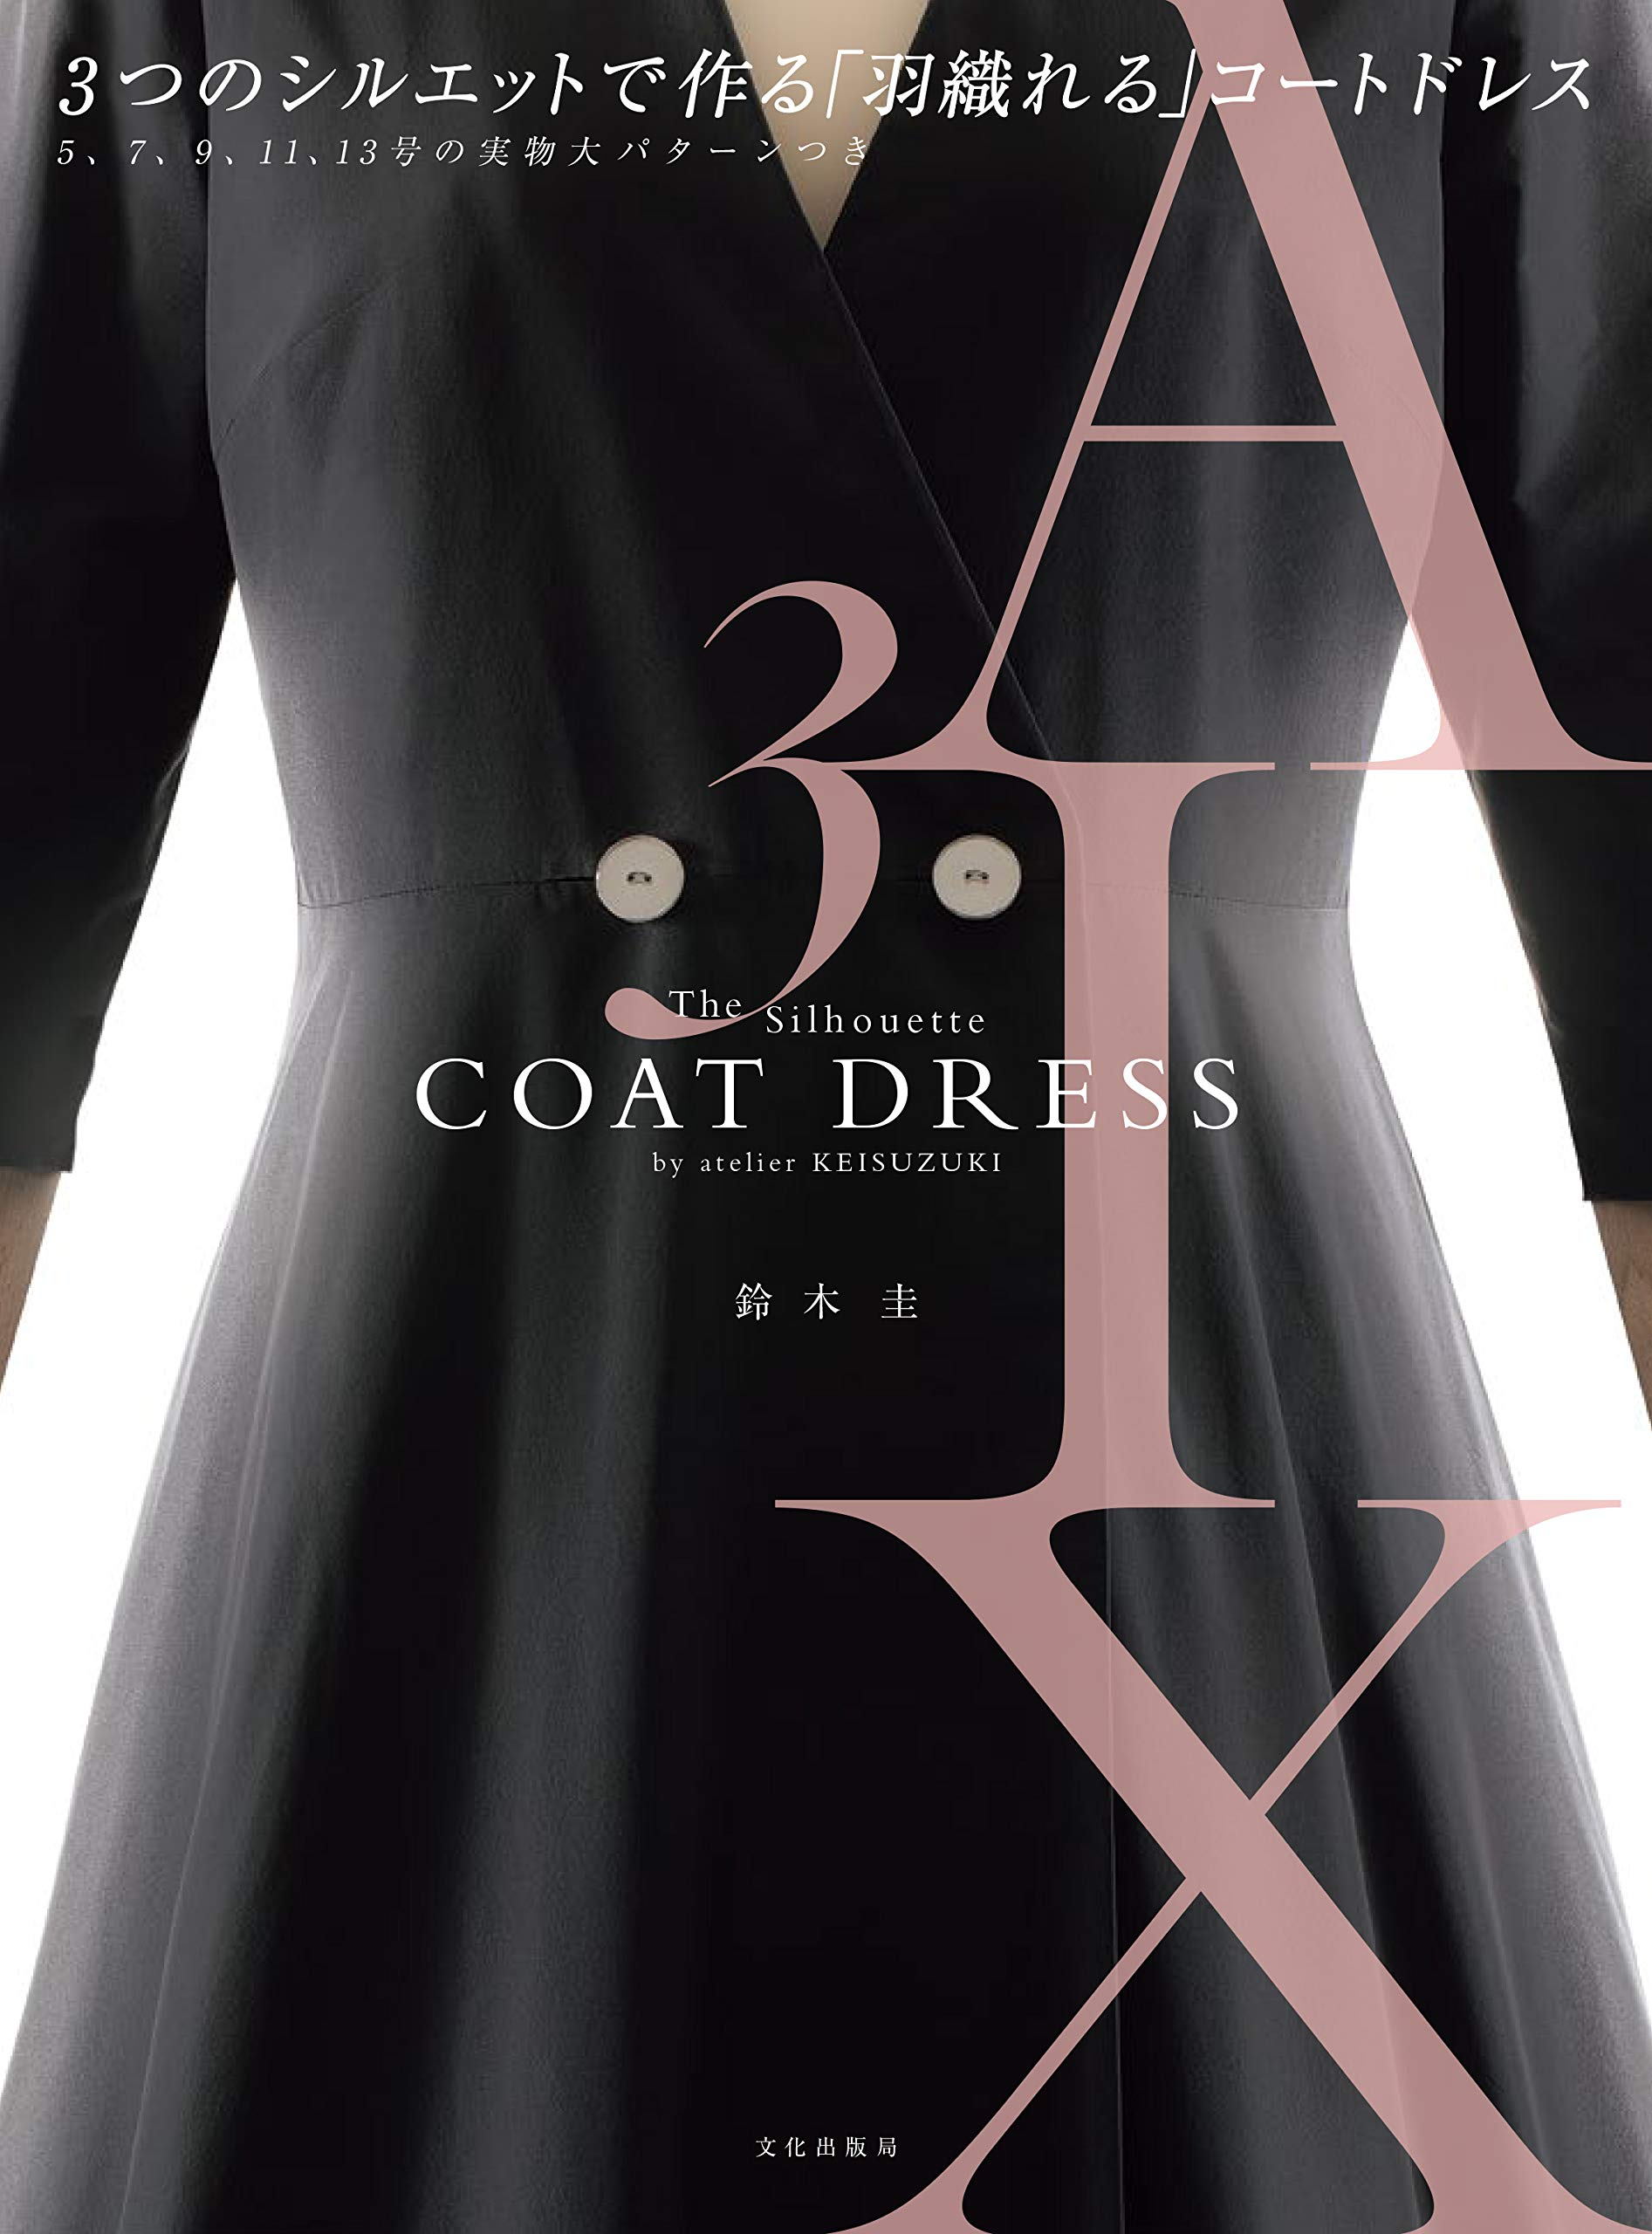 Coat dress made by three silhouettes